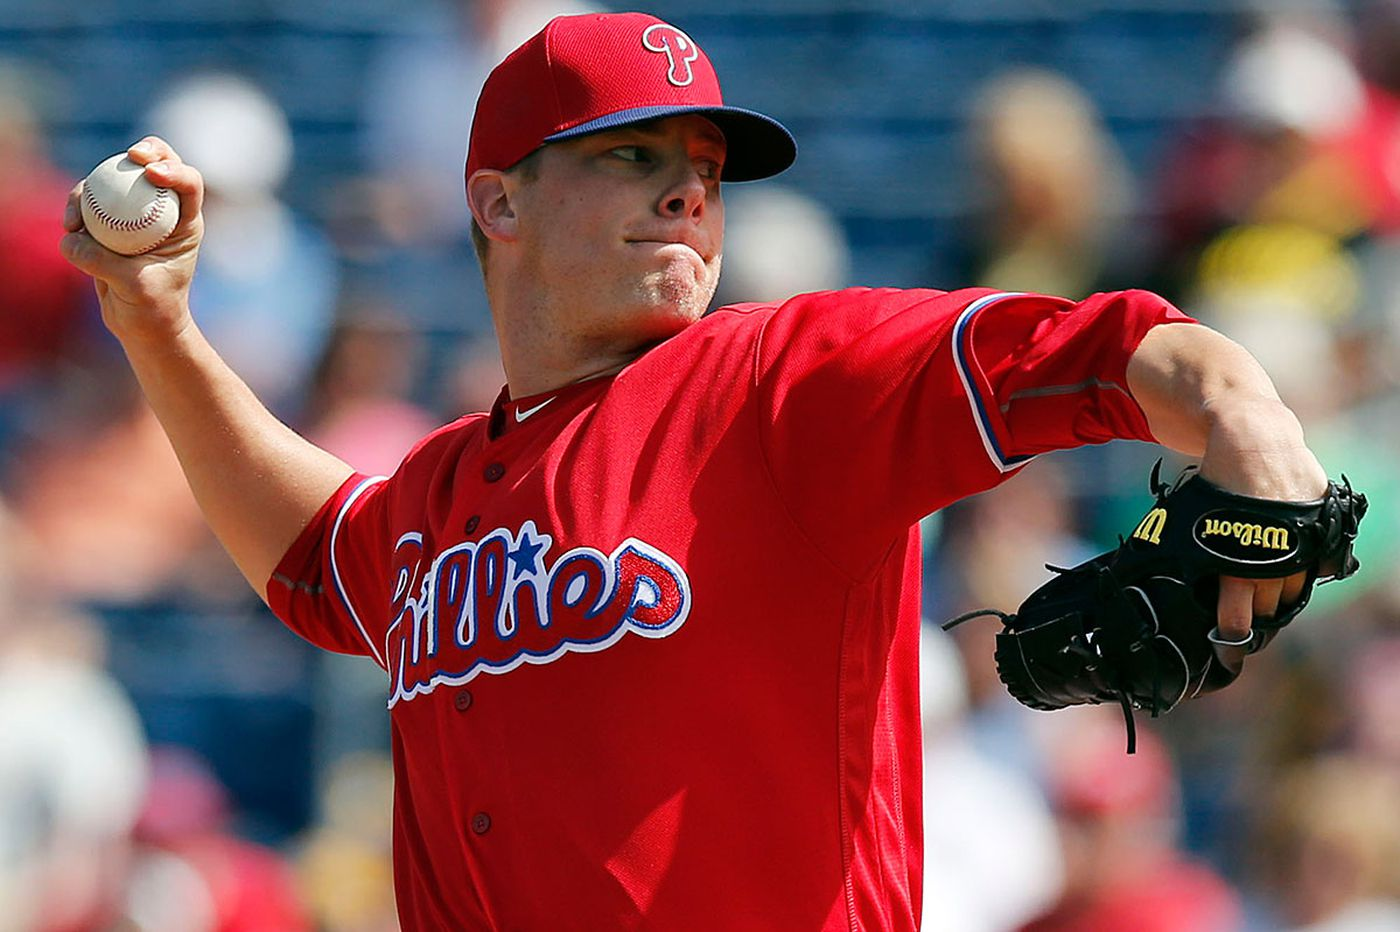 Bailey making pitch to be Phillies closer